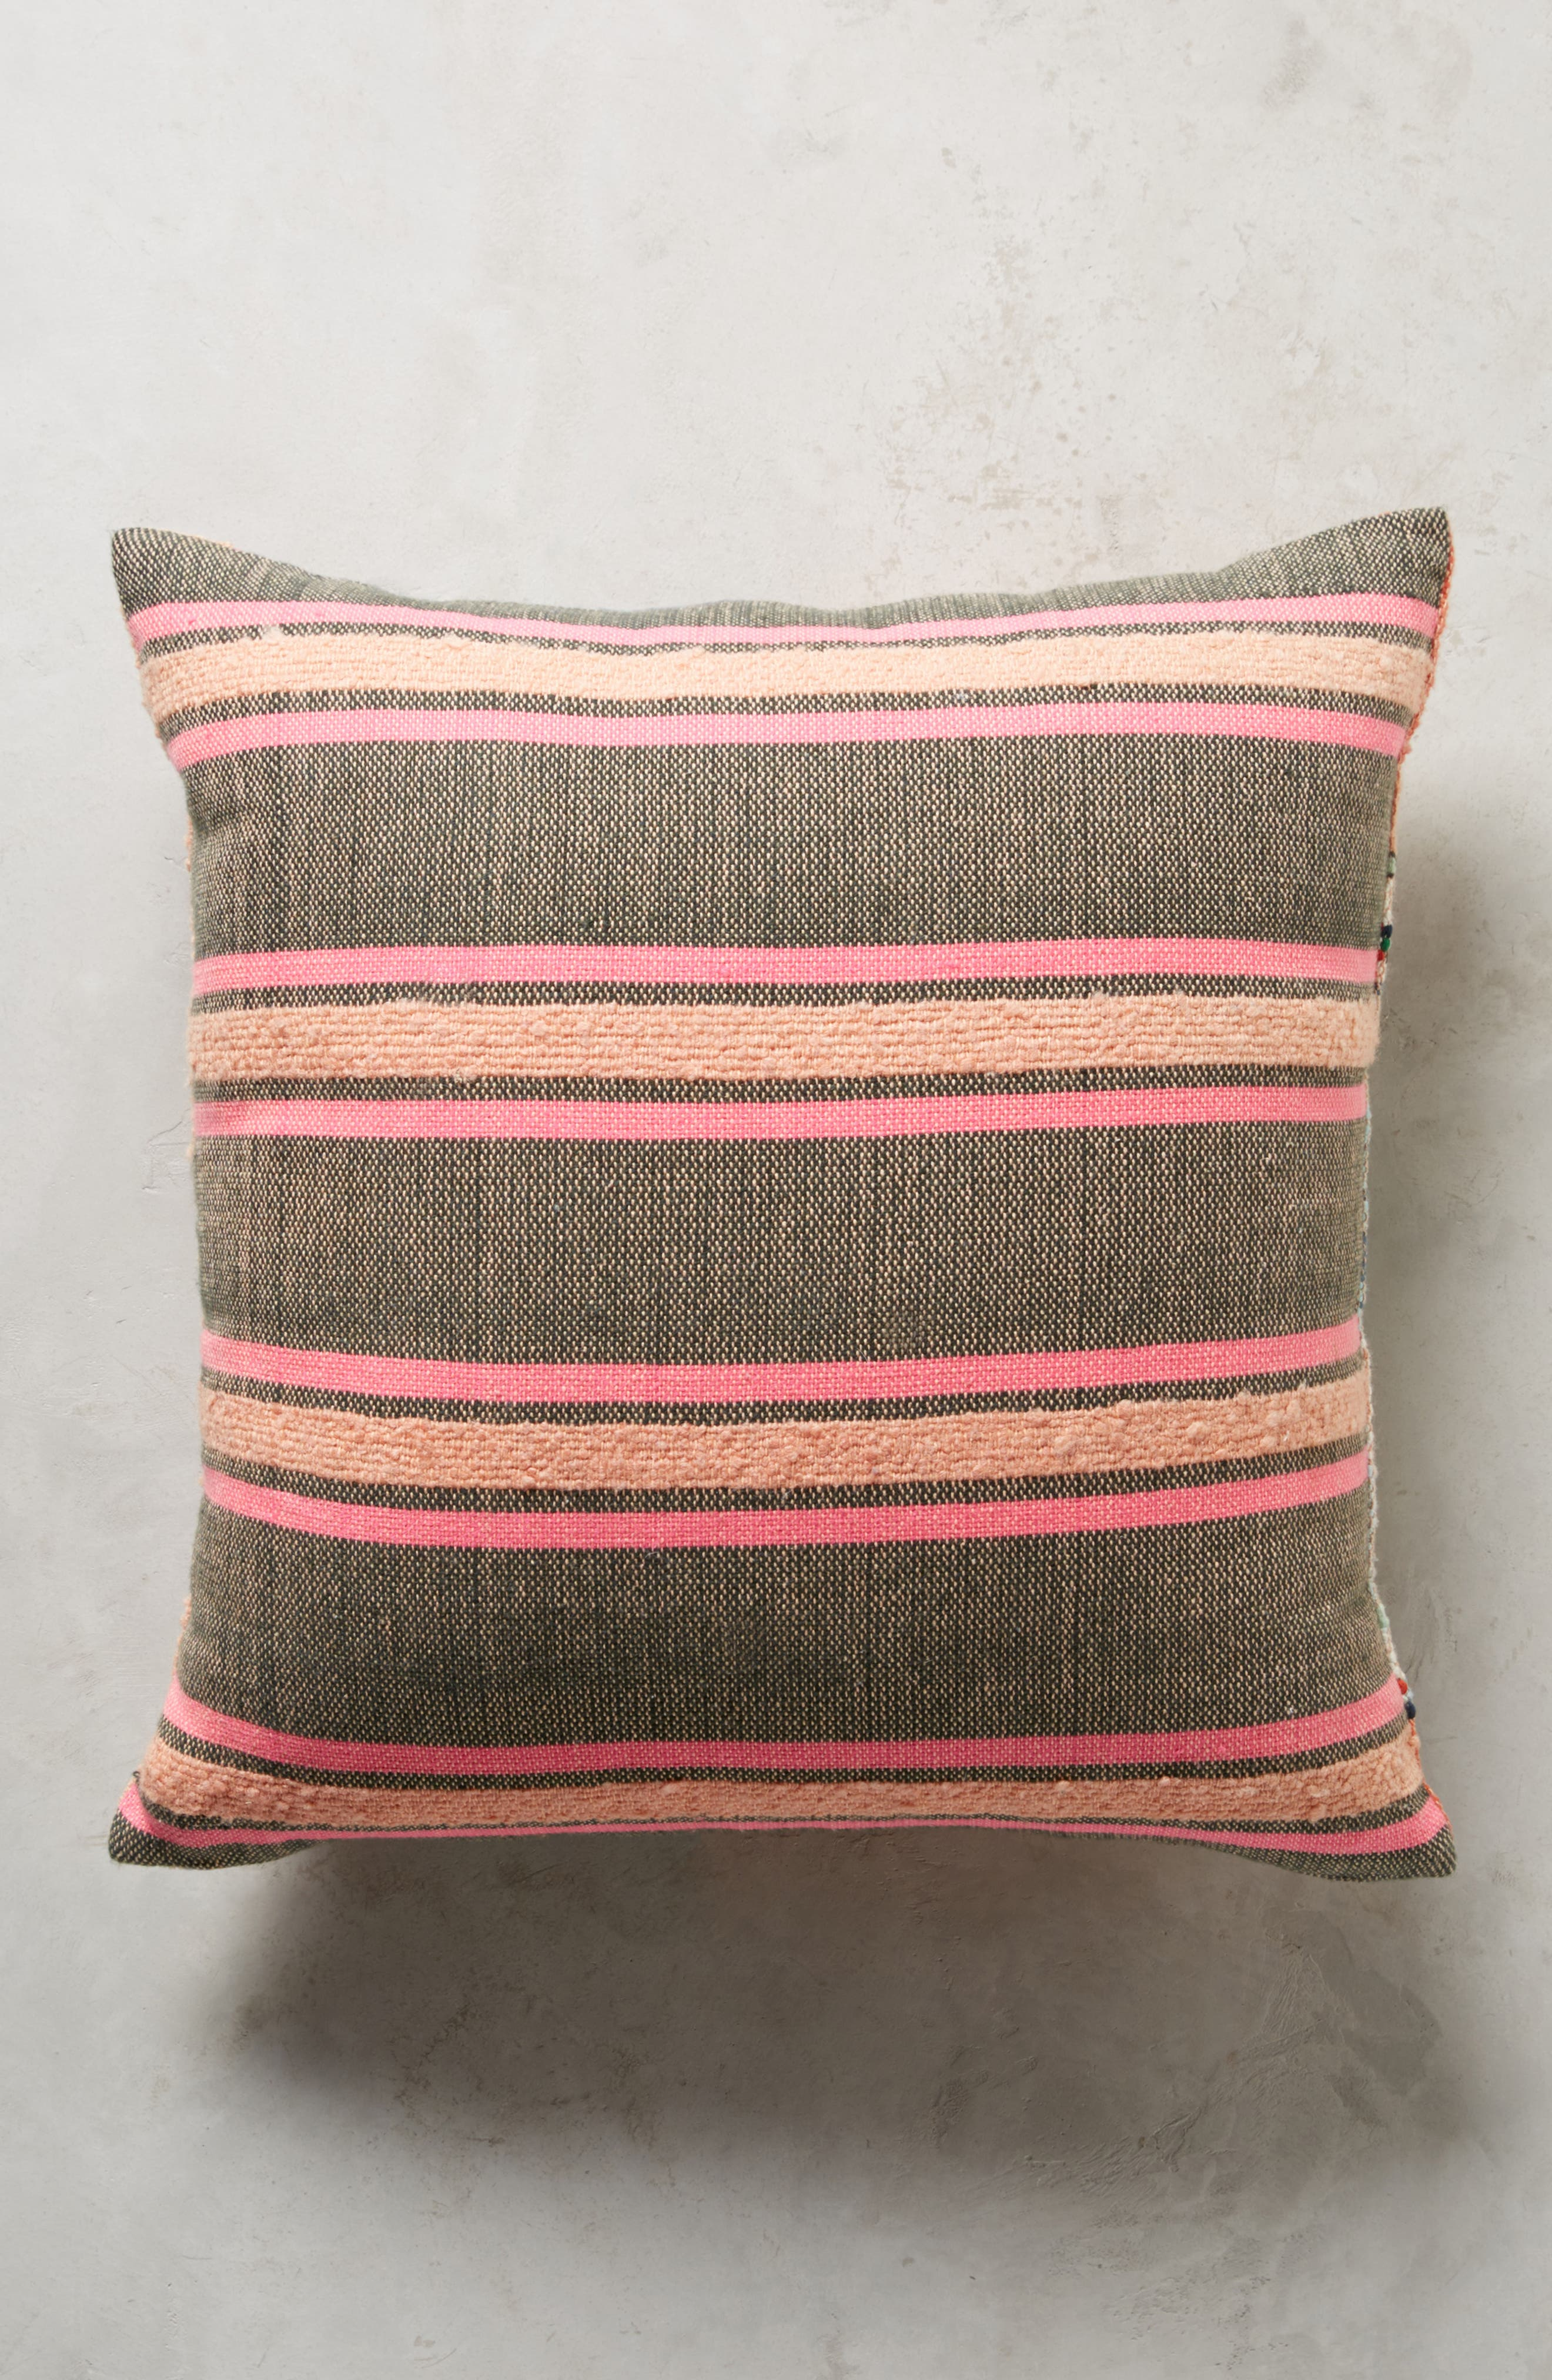 Yoursa Accent Pillow,                             Alternate thumbnail 2, color,                             950